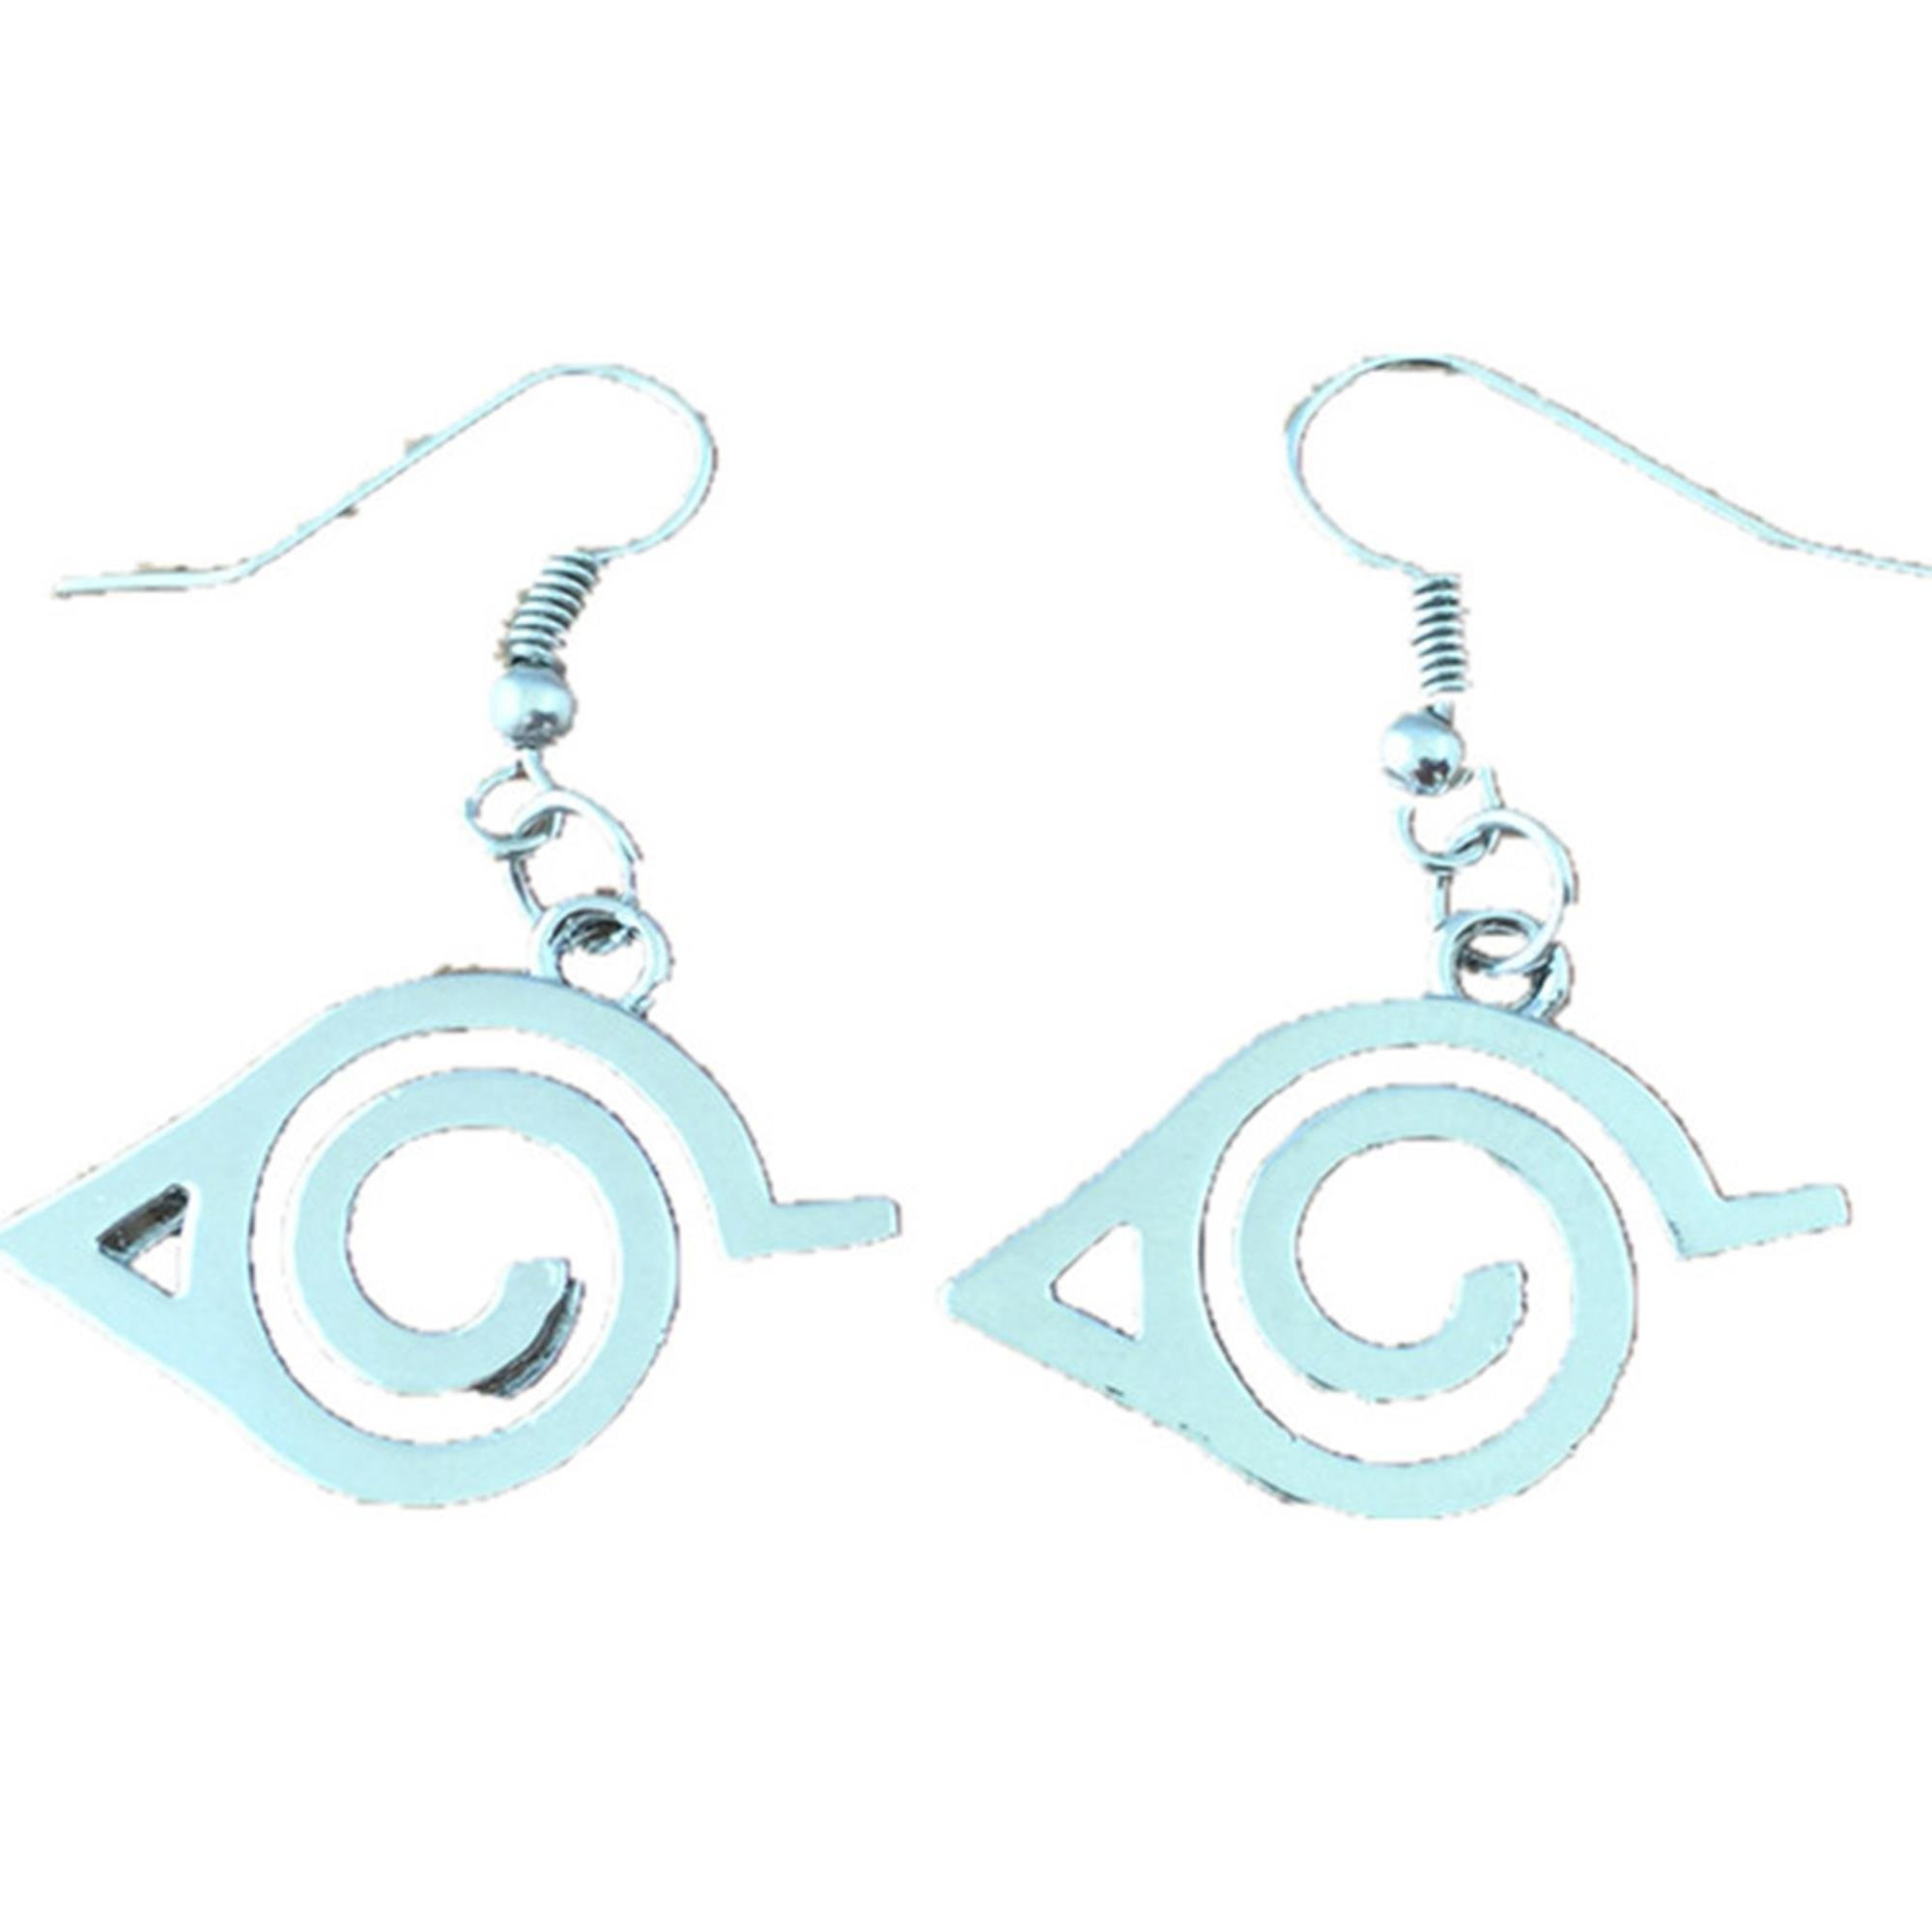 Outlander Naruto Logo Earring Dangles In Gift Box